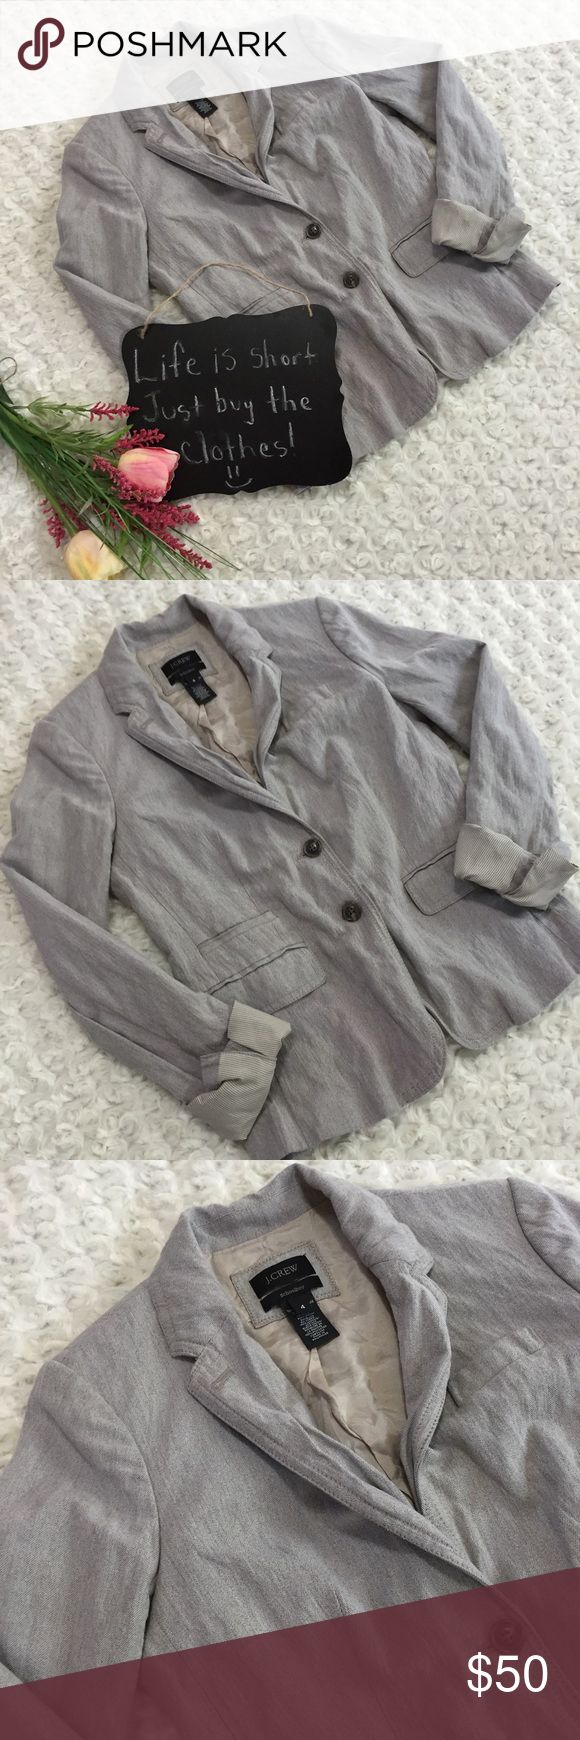 "J Crew Schoolboy blazer Gray J Crew Schoolboy blazer. Very very cute!!!!! In excellent condition. Size 4. 17.5"" arm pit to arm pit. 23.5"" length. J. Crew Jackets & Coats Blazers"